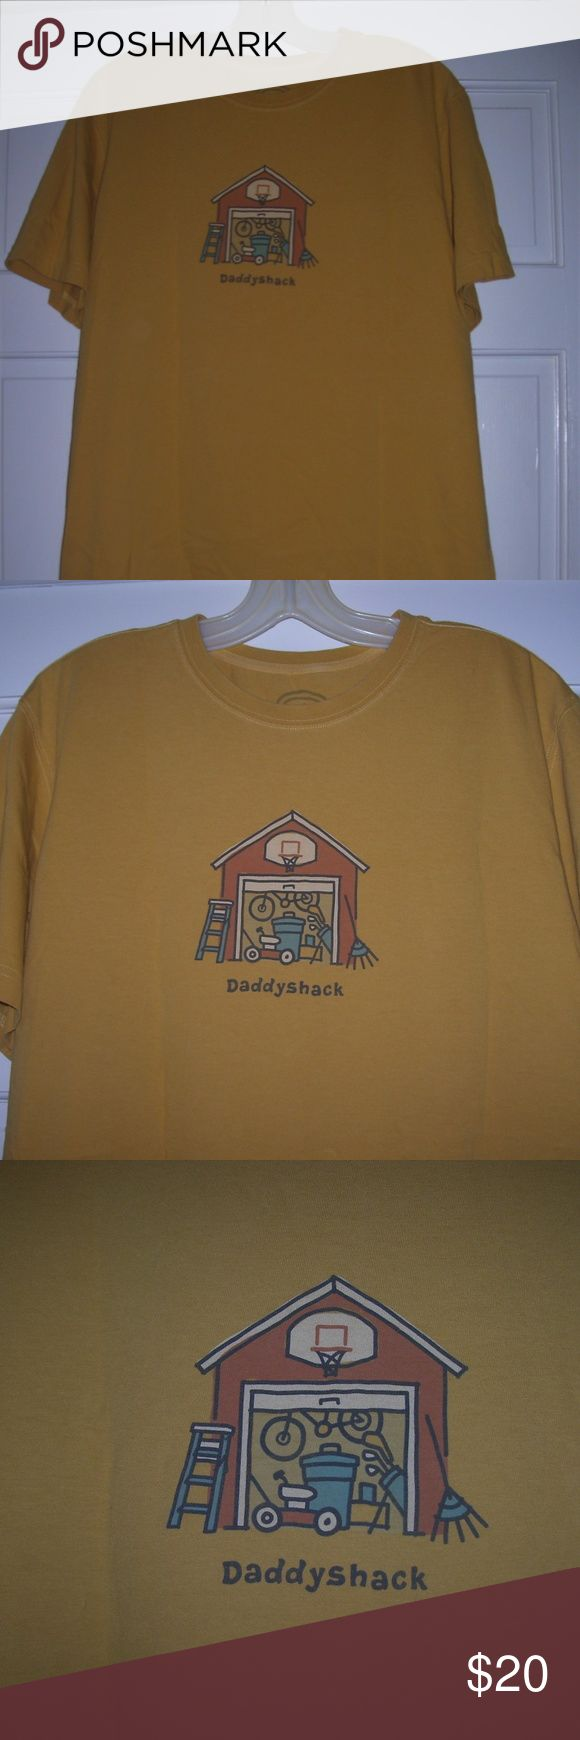 """LIFE IS GOOD Men's Crusher DADDYSHACK Tee *Mustard Men's Life is Good """"Daddyshack"""" crusher tee, size large. Mustard yellow. Front features a garage with open door. Lawn mower, garbage can, golf clubs, and bike inside, rake and step ladder outside. Underneath is written """"Daddyshack."""" Crew neck. Short sleeves. Vintage finish features a faded and worn appearance. 100% cotton. Gently used condition. Life is Good Shirts Tees - Short Sleeve"""